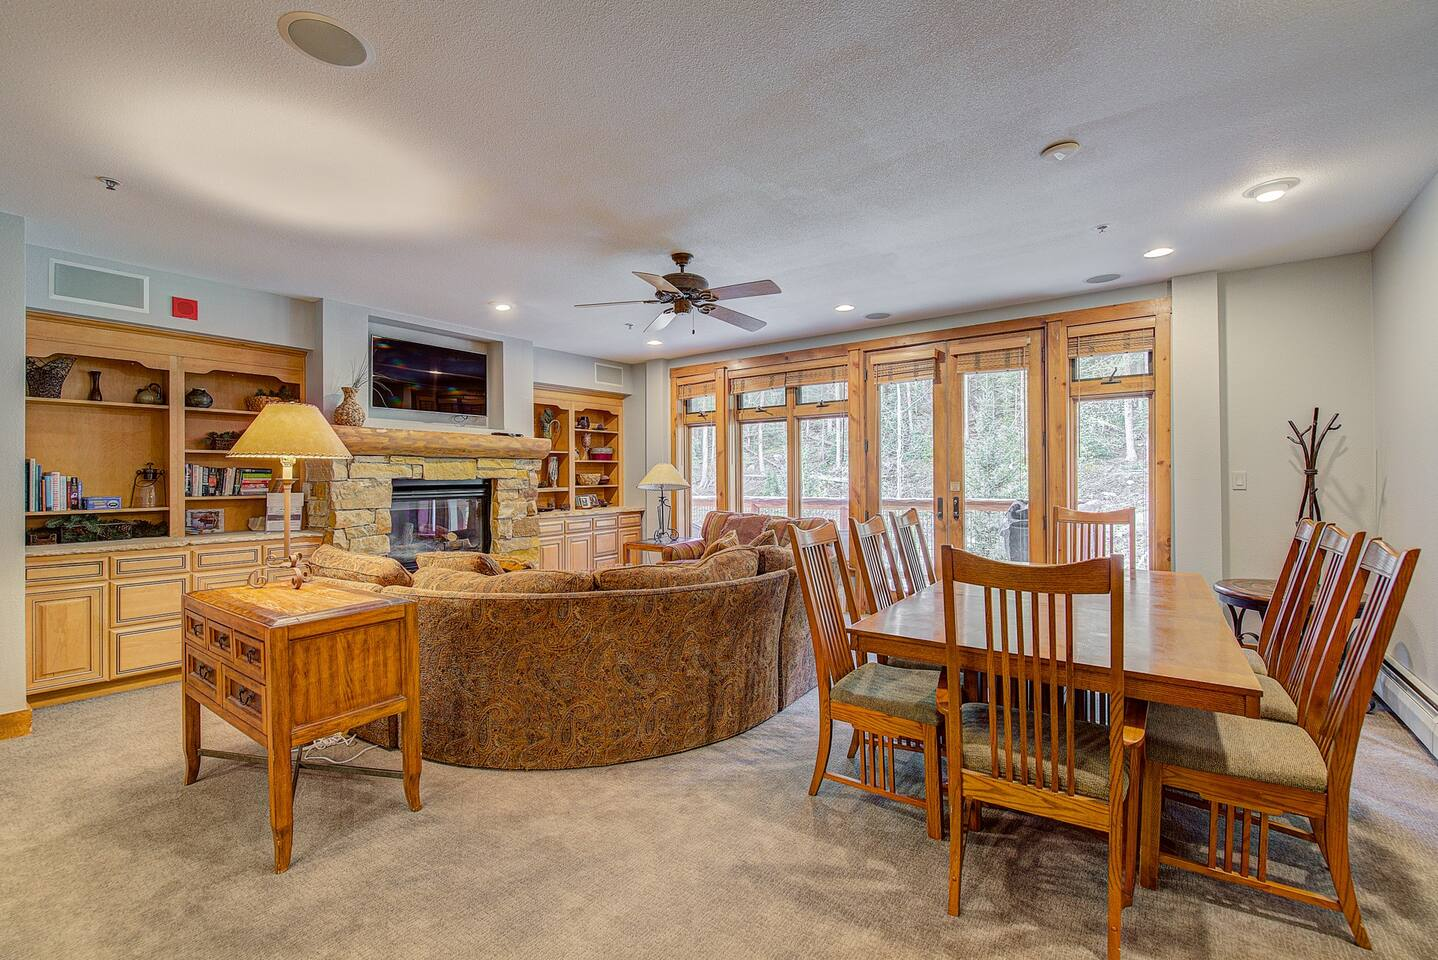 Large Living Room/Dining Room with Flat Screen & Fireplace. Plenty of room for families and large groups. Walk out on to the balcony to see beautiful views of the mountains and slopes.